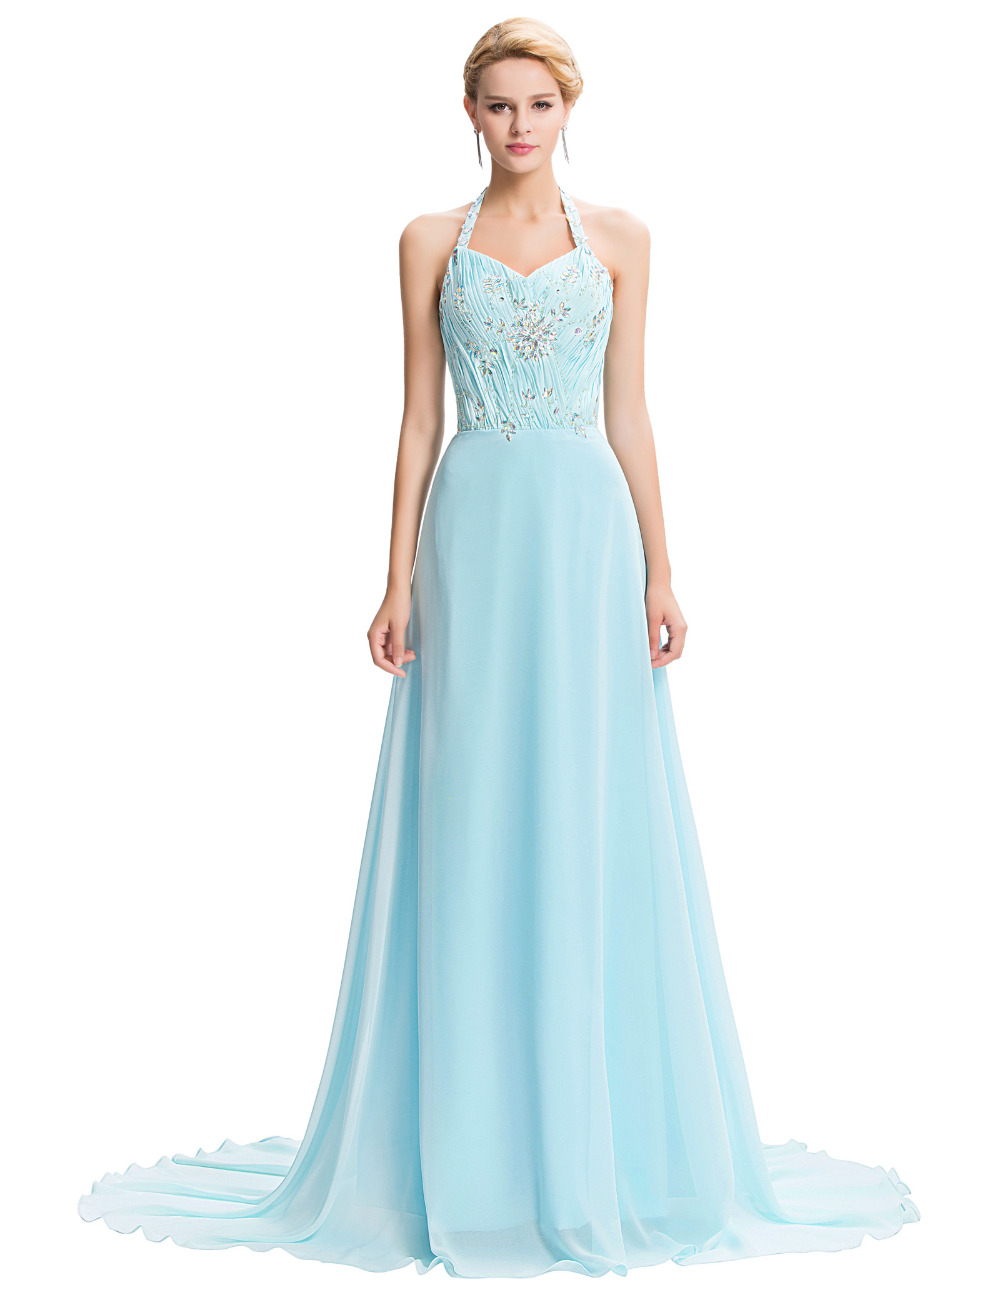 Nice Cecily Brown Prom Dresses Pattern - All Wedding Dresses ...